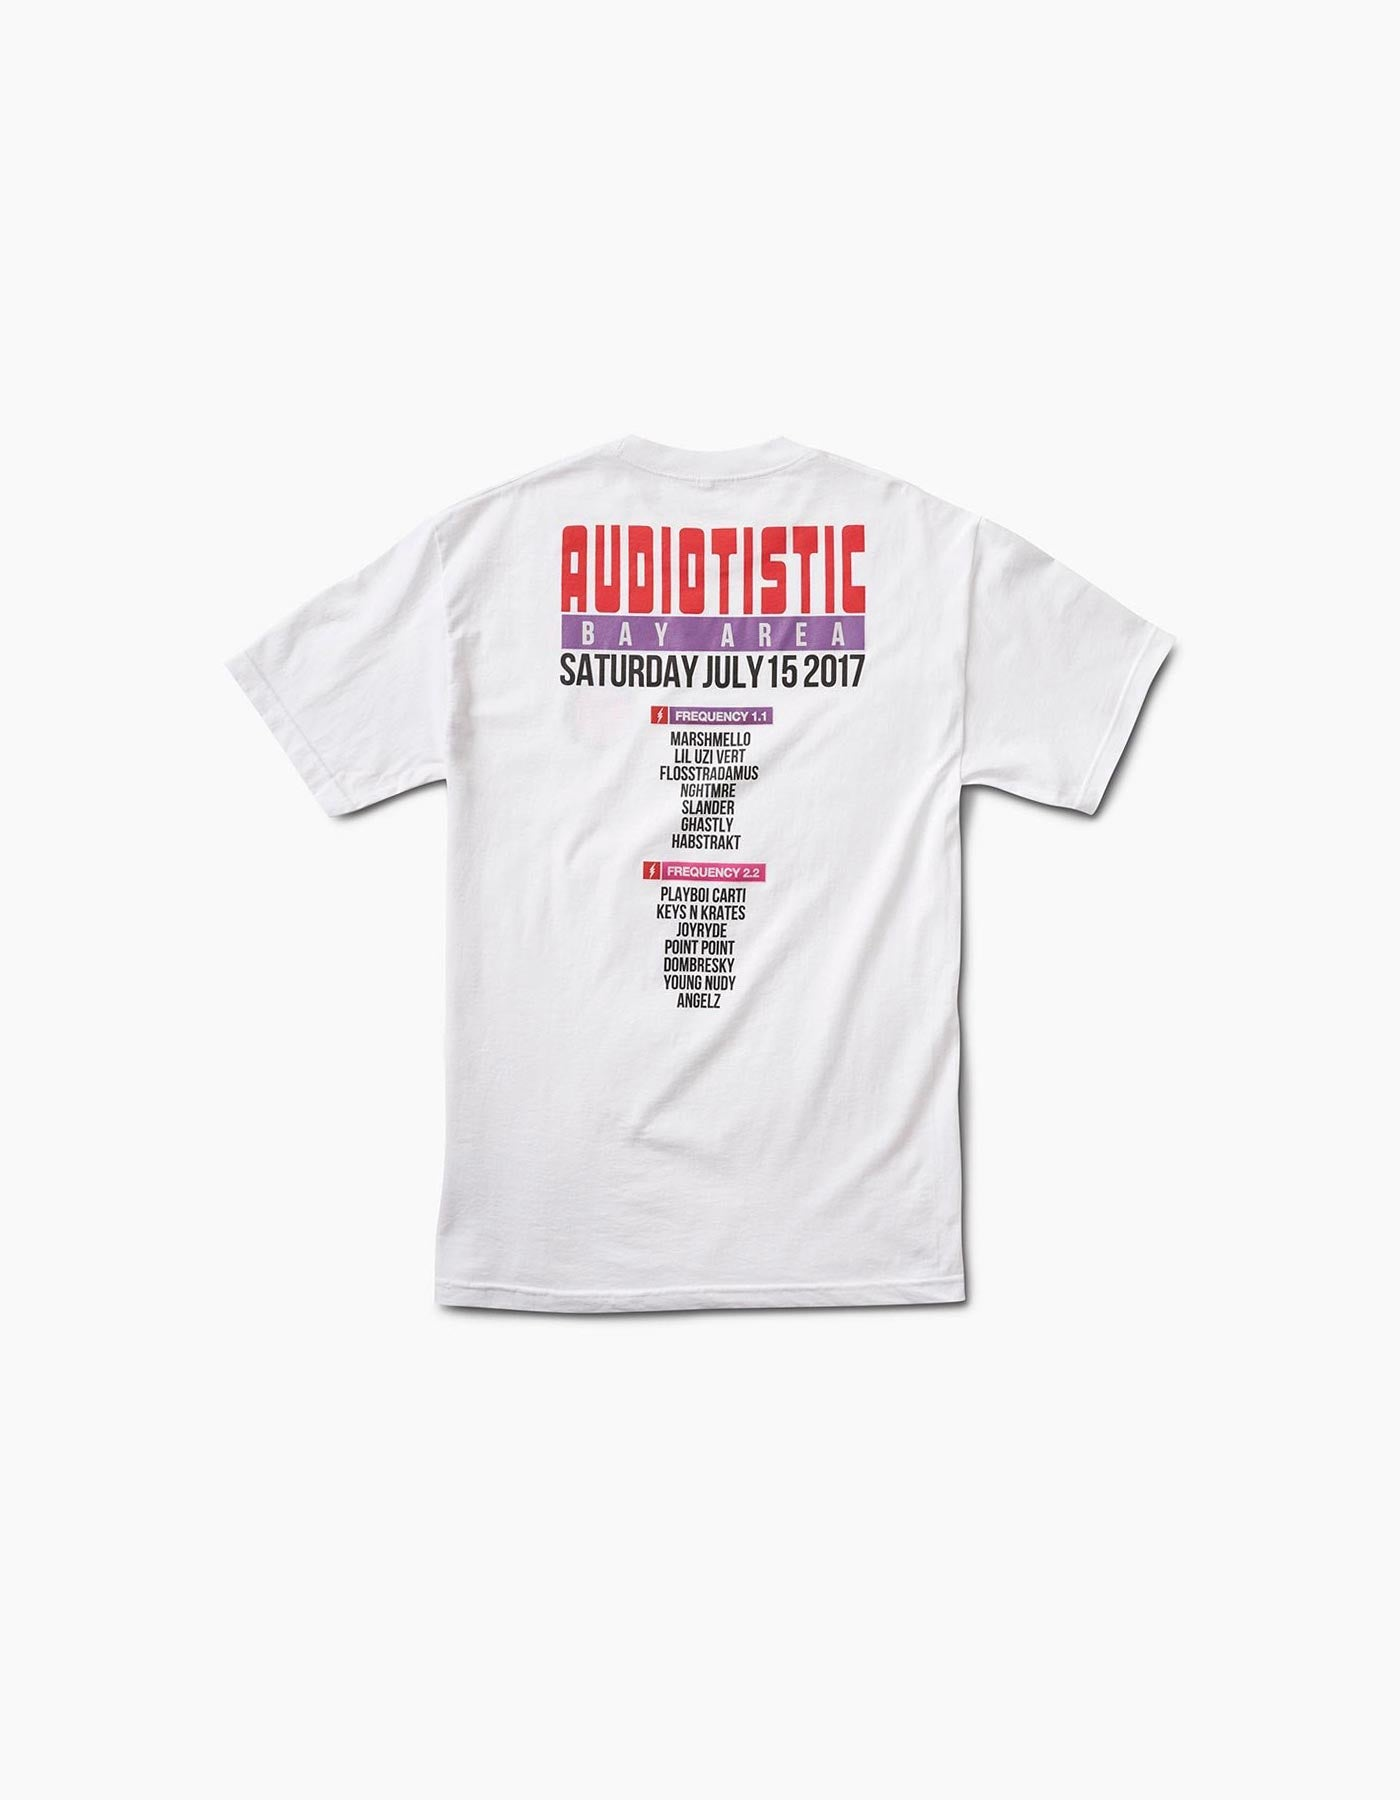 Audiotistic Bay Area 2017 SF Line Up Tee